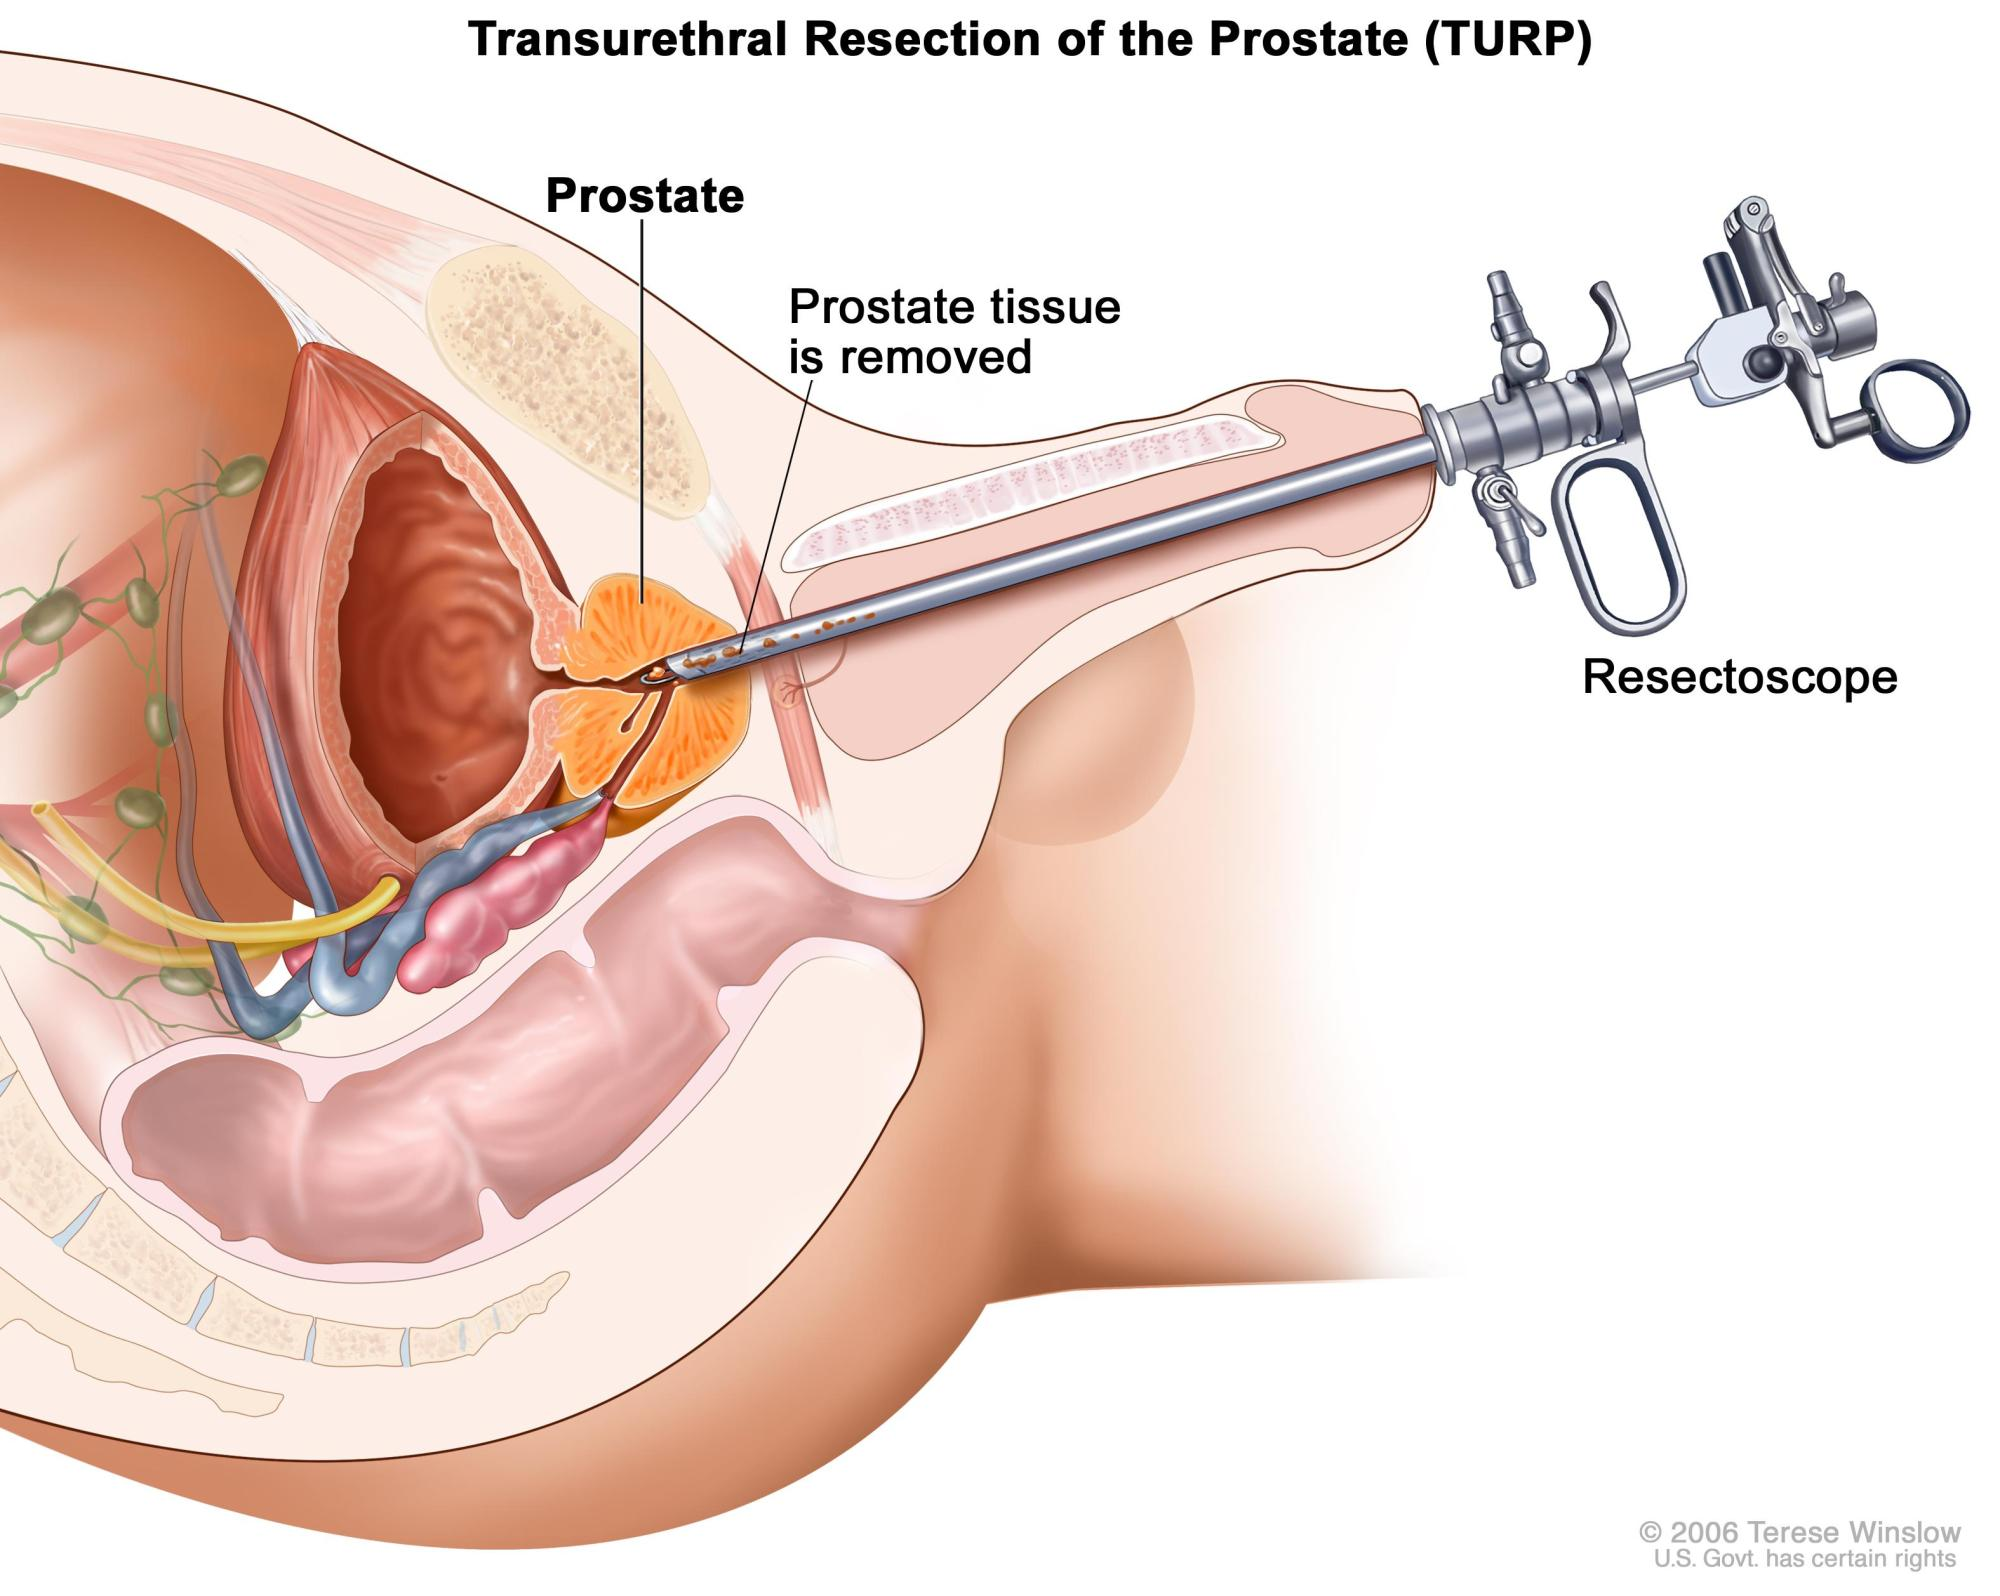 hight resolution of transurethral resection of the prostate turp tissue is removed from the prostate using a resectoscope a thin lighted tube with a cutting tool at the